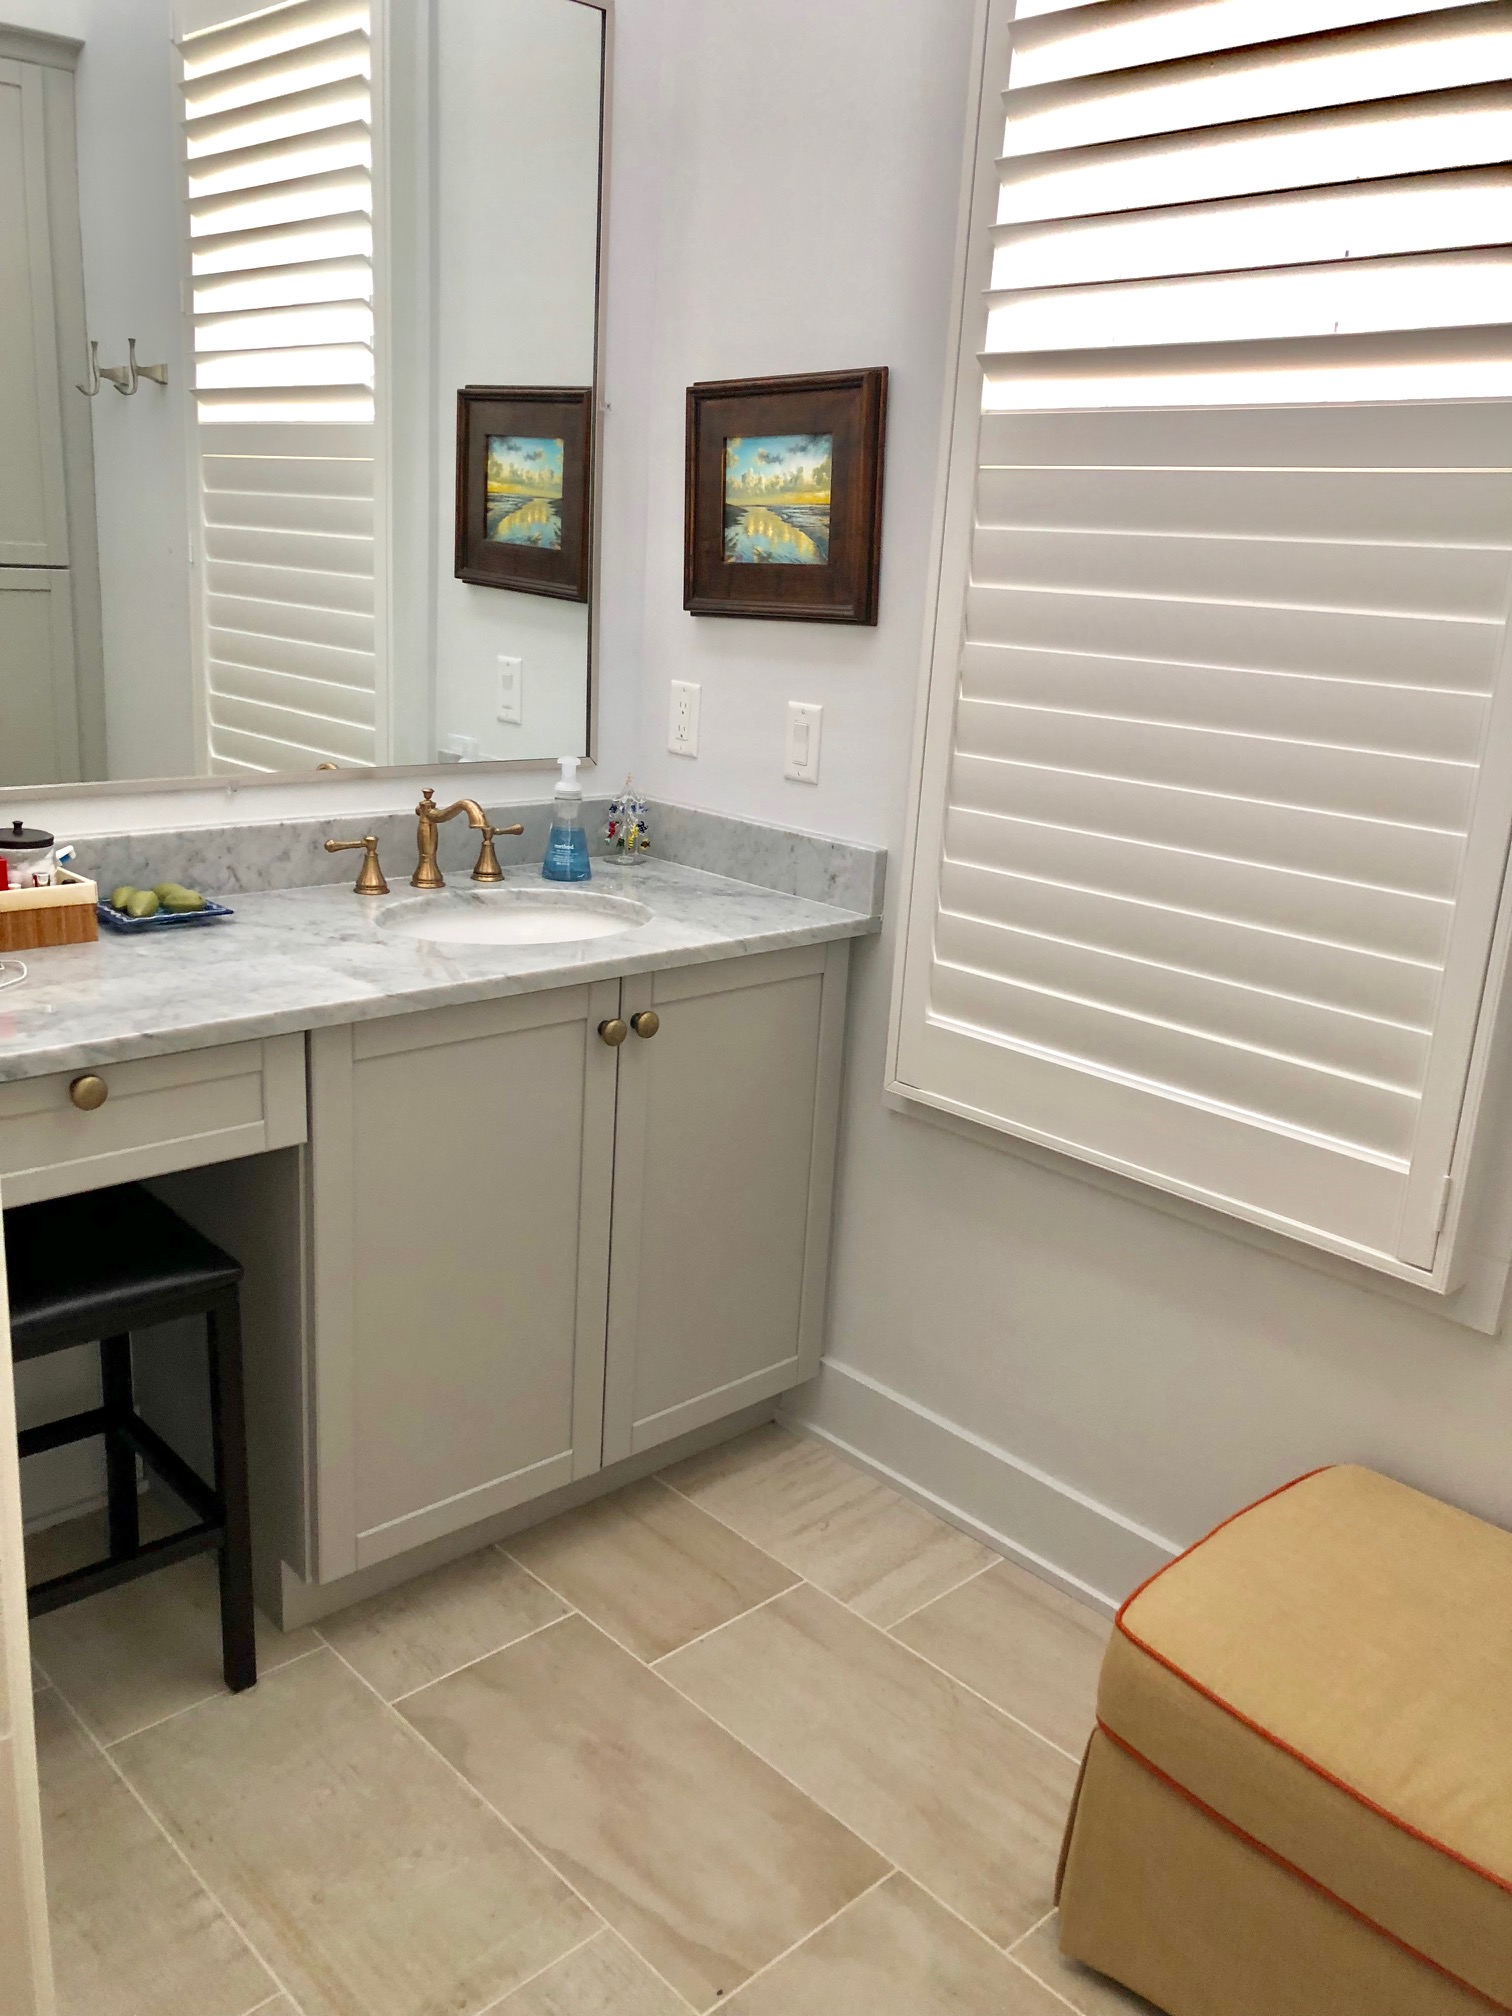 The master bathroom has a second sink and vanity area.